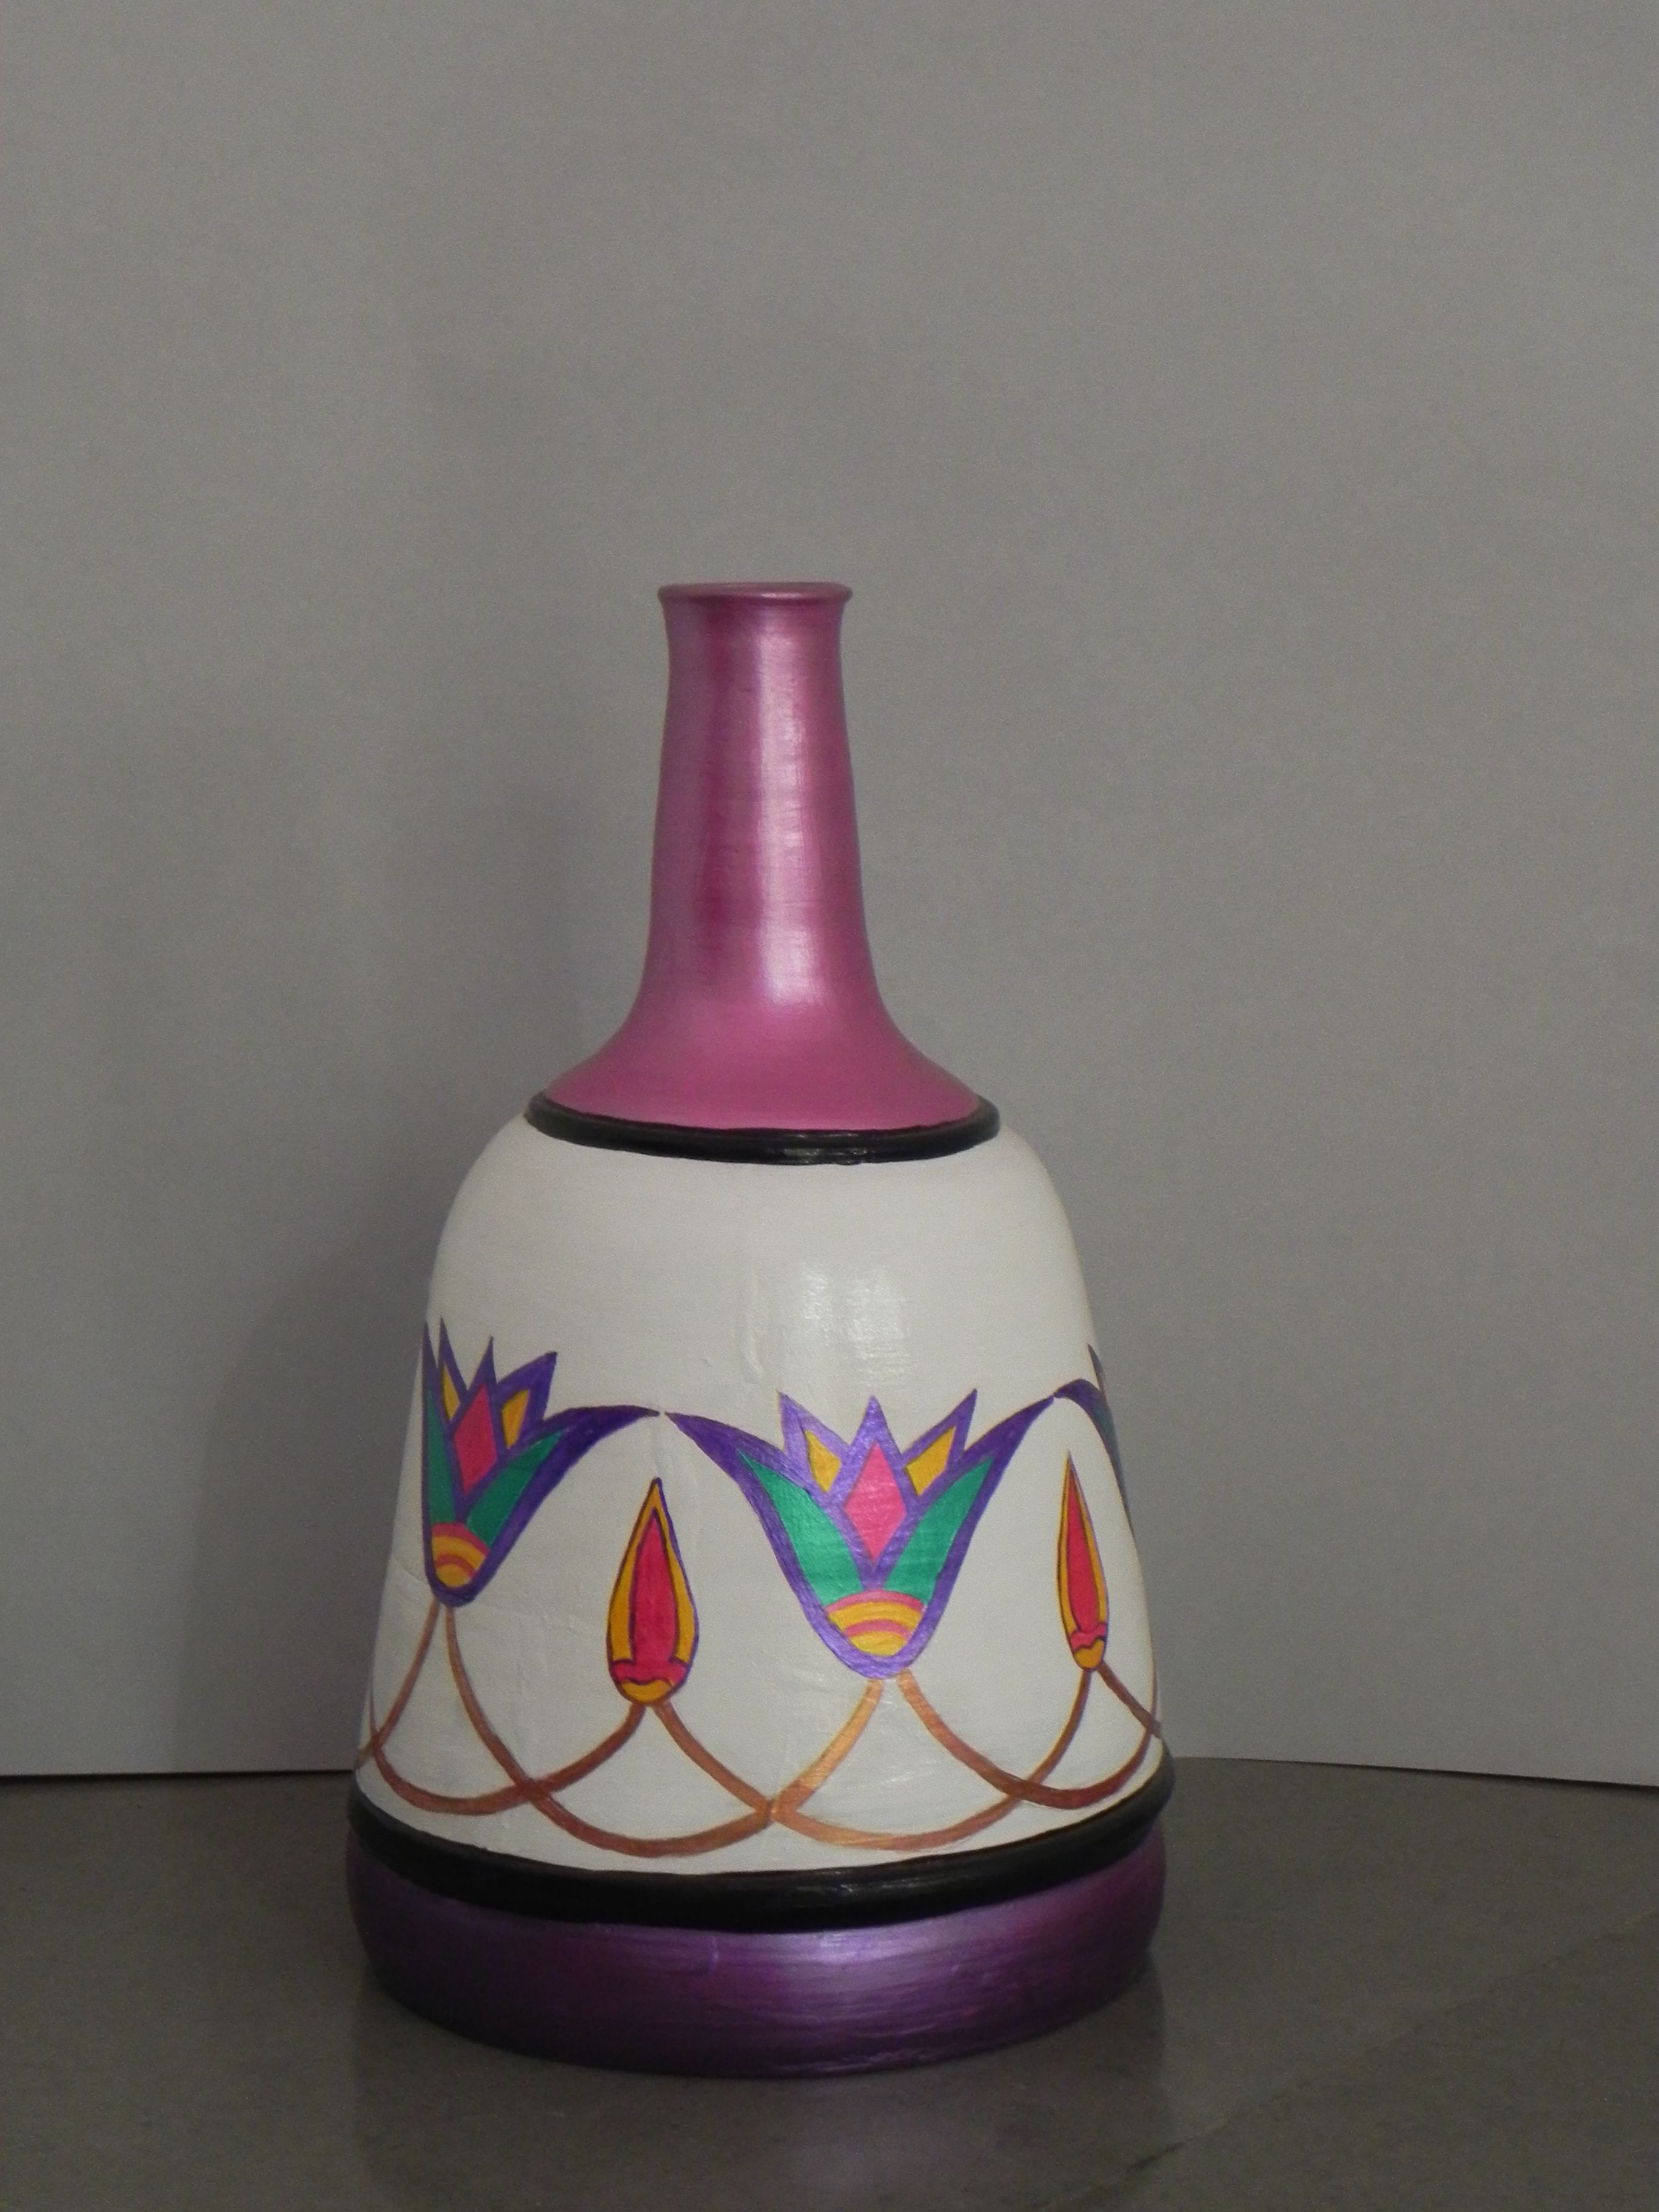 Flower Vase Online India Of Egyptian Style Pot Floral Design In Egyptian Style White Background Throughout Egyptian Style Pot Floral Design In Egyptian Style White Background Pink Neck Violet Bottom Size 15 5 Tall X 9